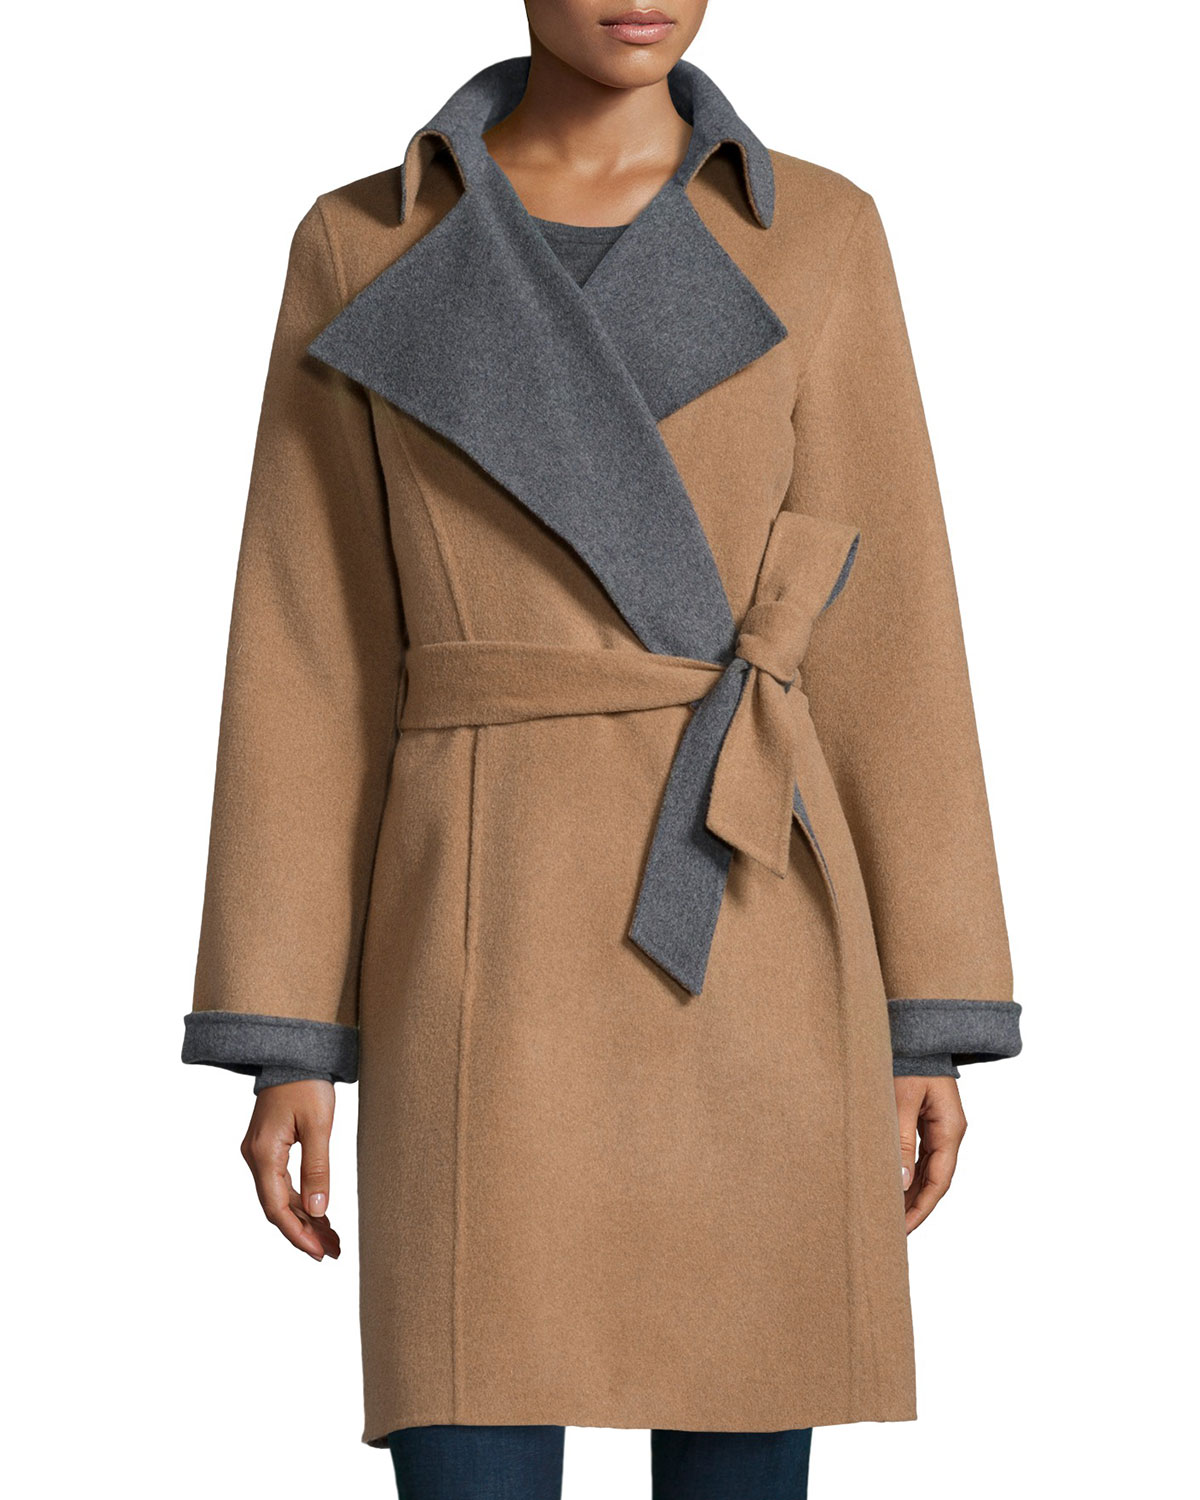 Double-Face Belted Wool-Blend Coat, Size: LARGE/12-14, Camel/Grey - Neiman Marcus